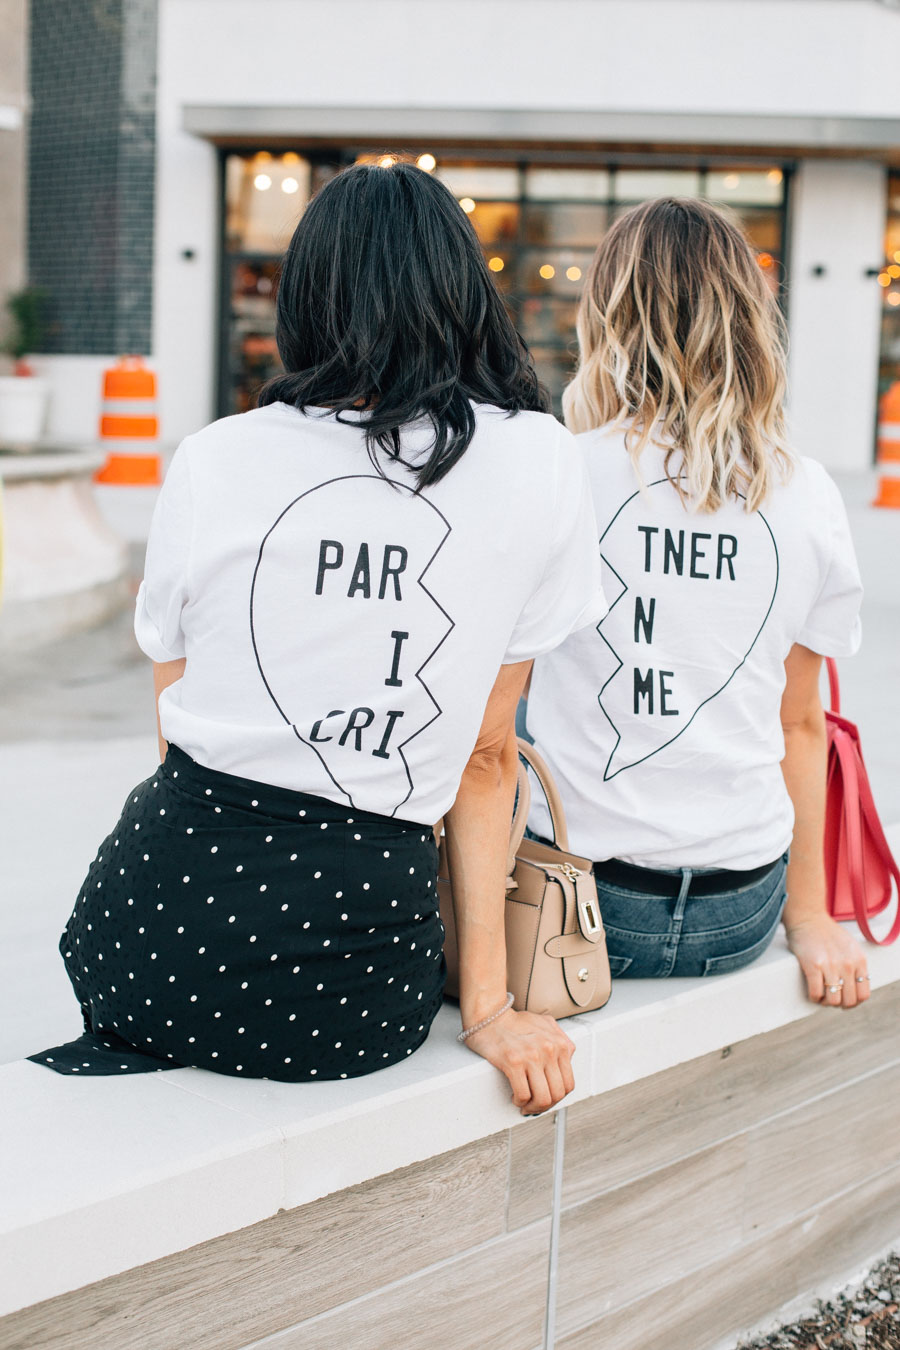 fashion bloggers Elly Brown and Lilly Beltran in matching shopbop bff tee shirts